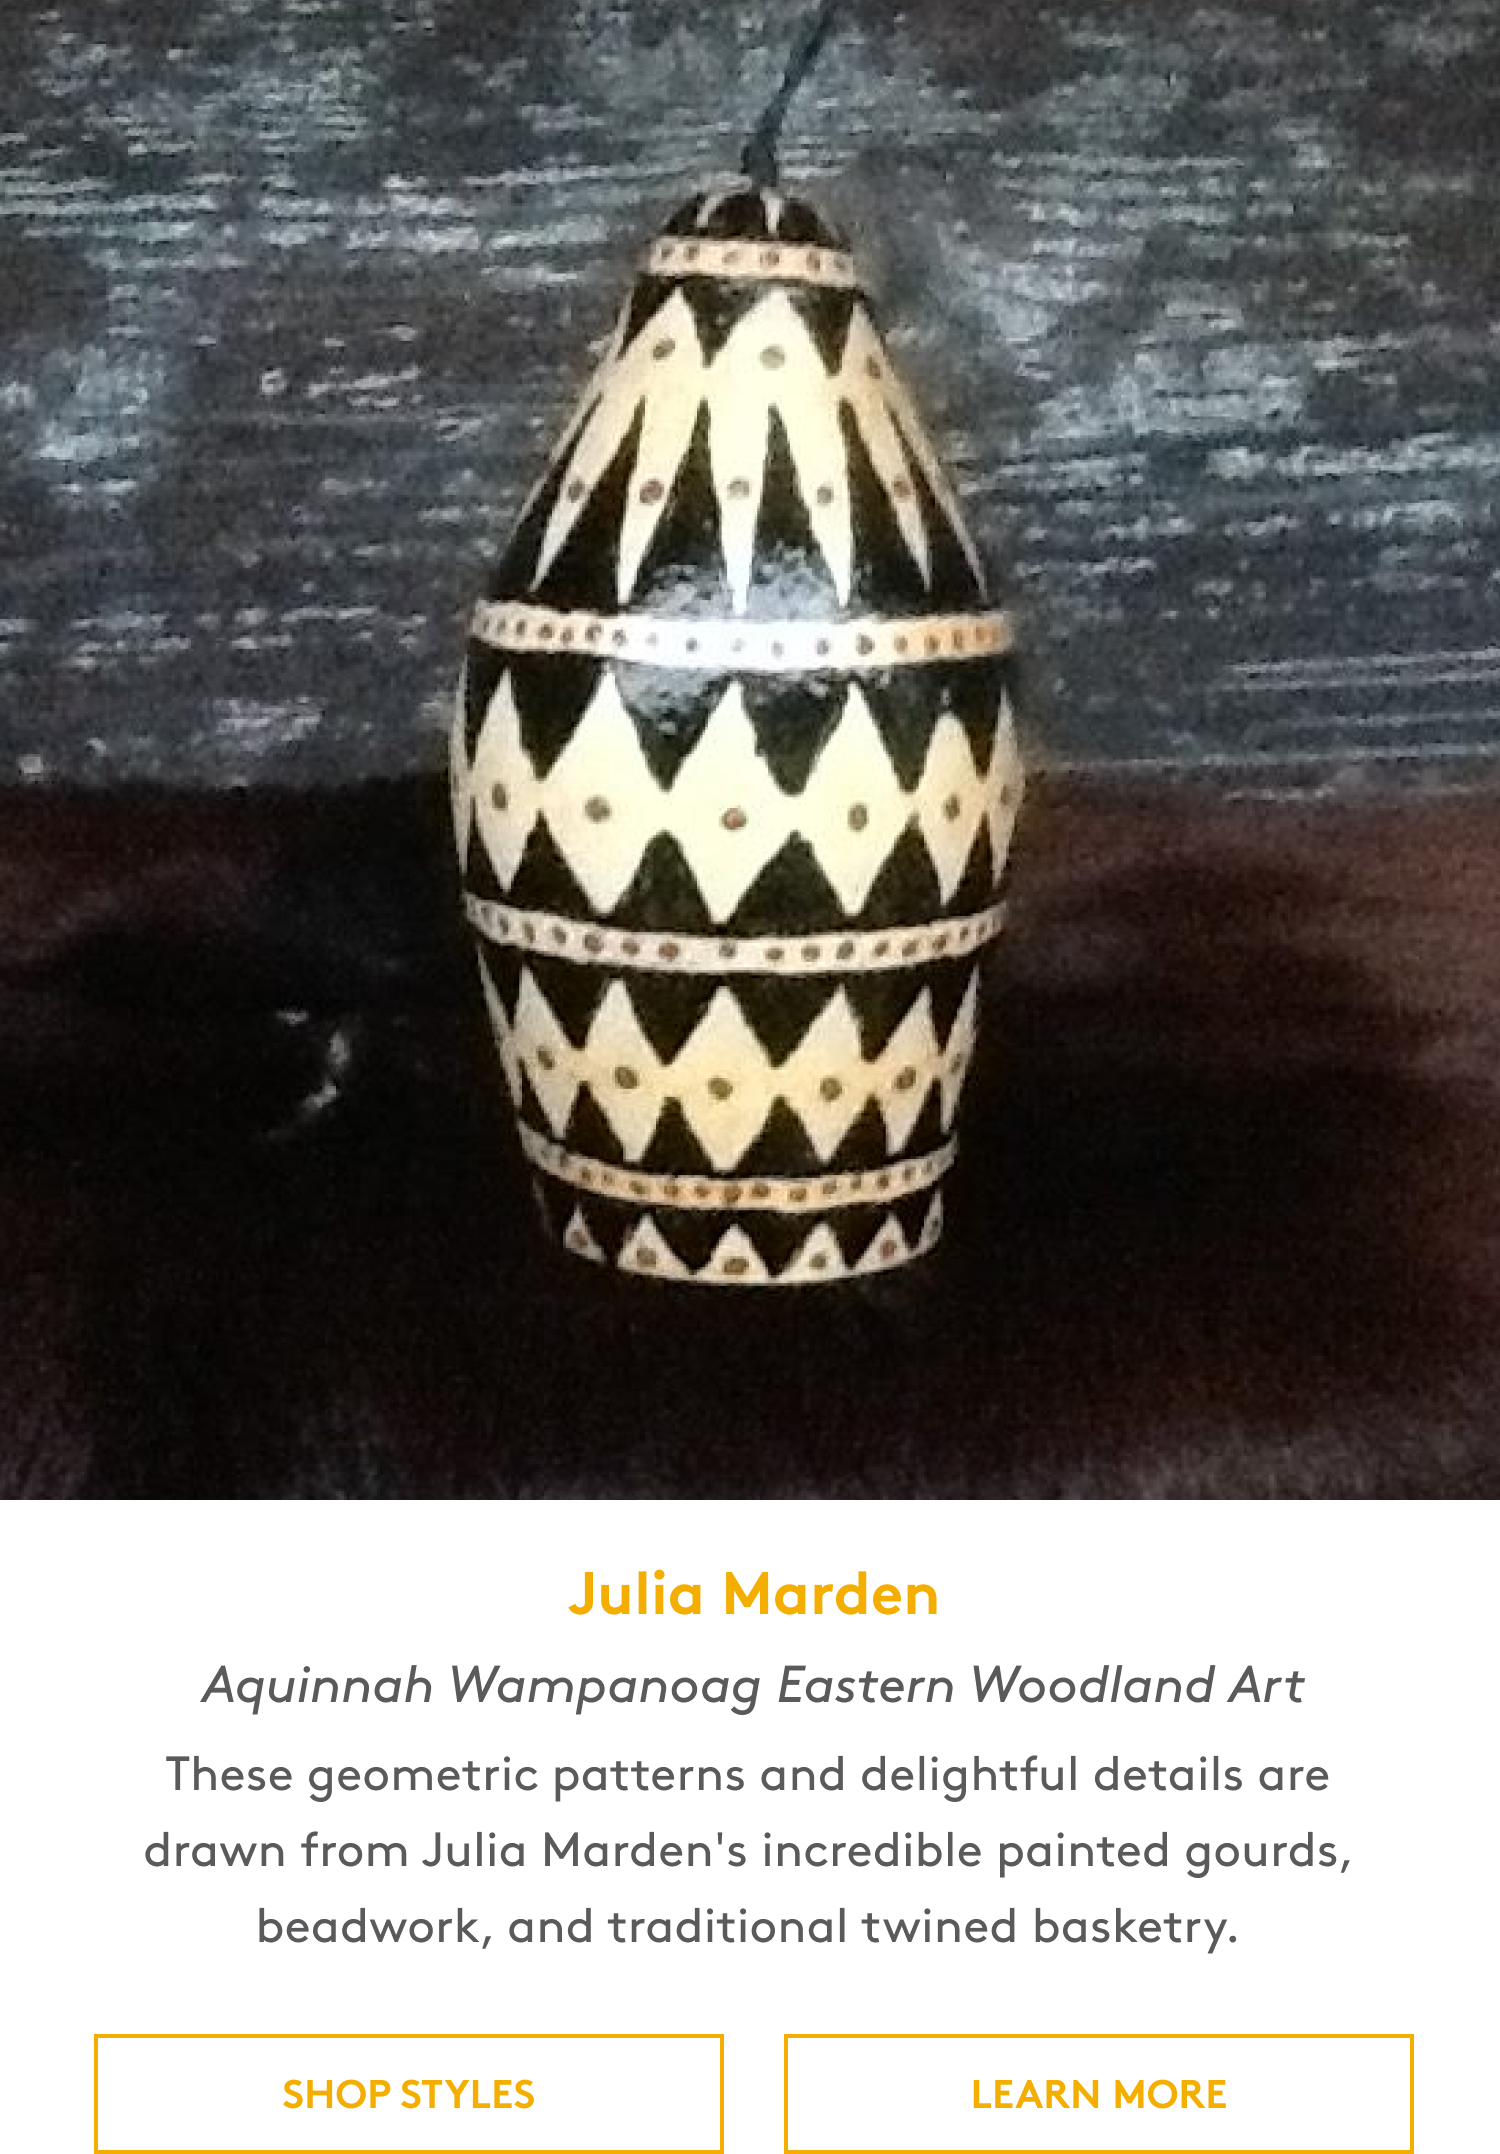 These geometric patterns and delightful details are 